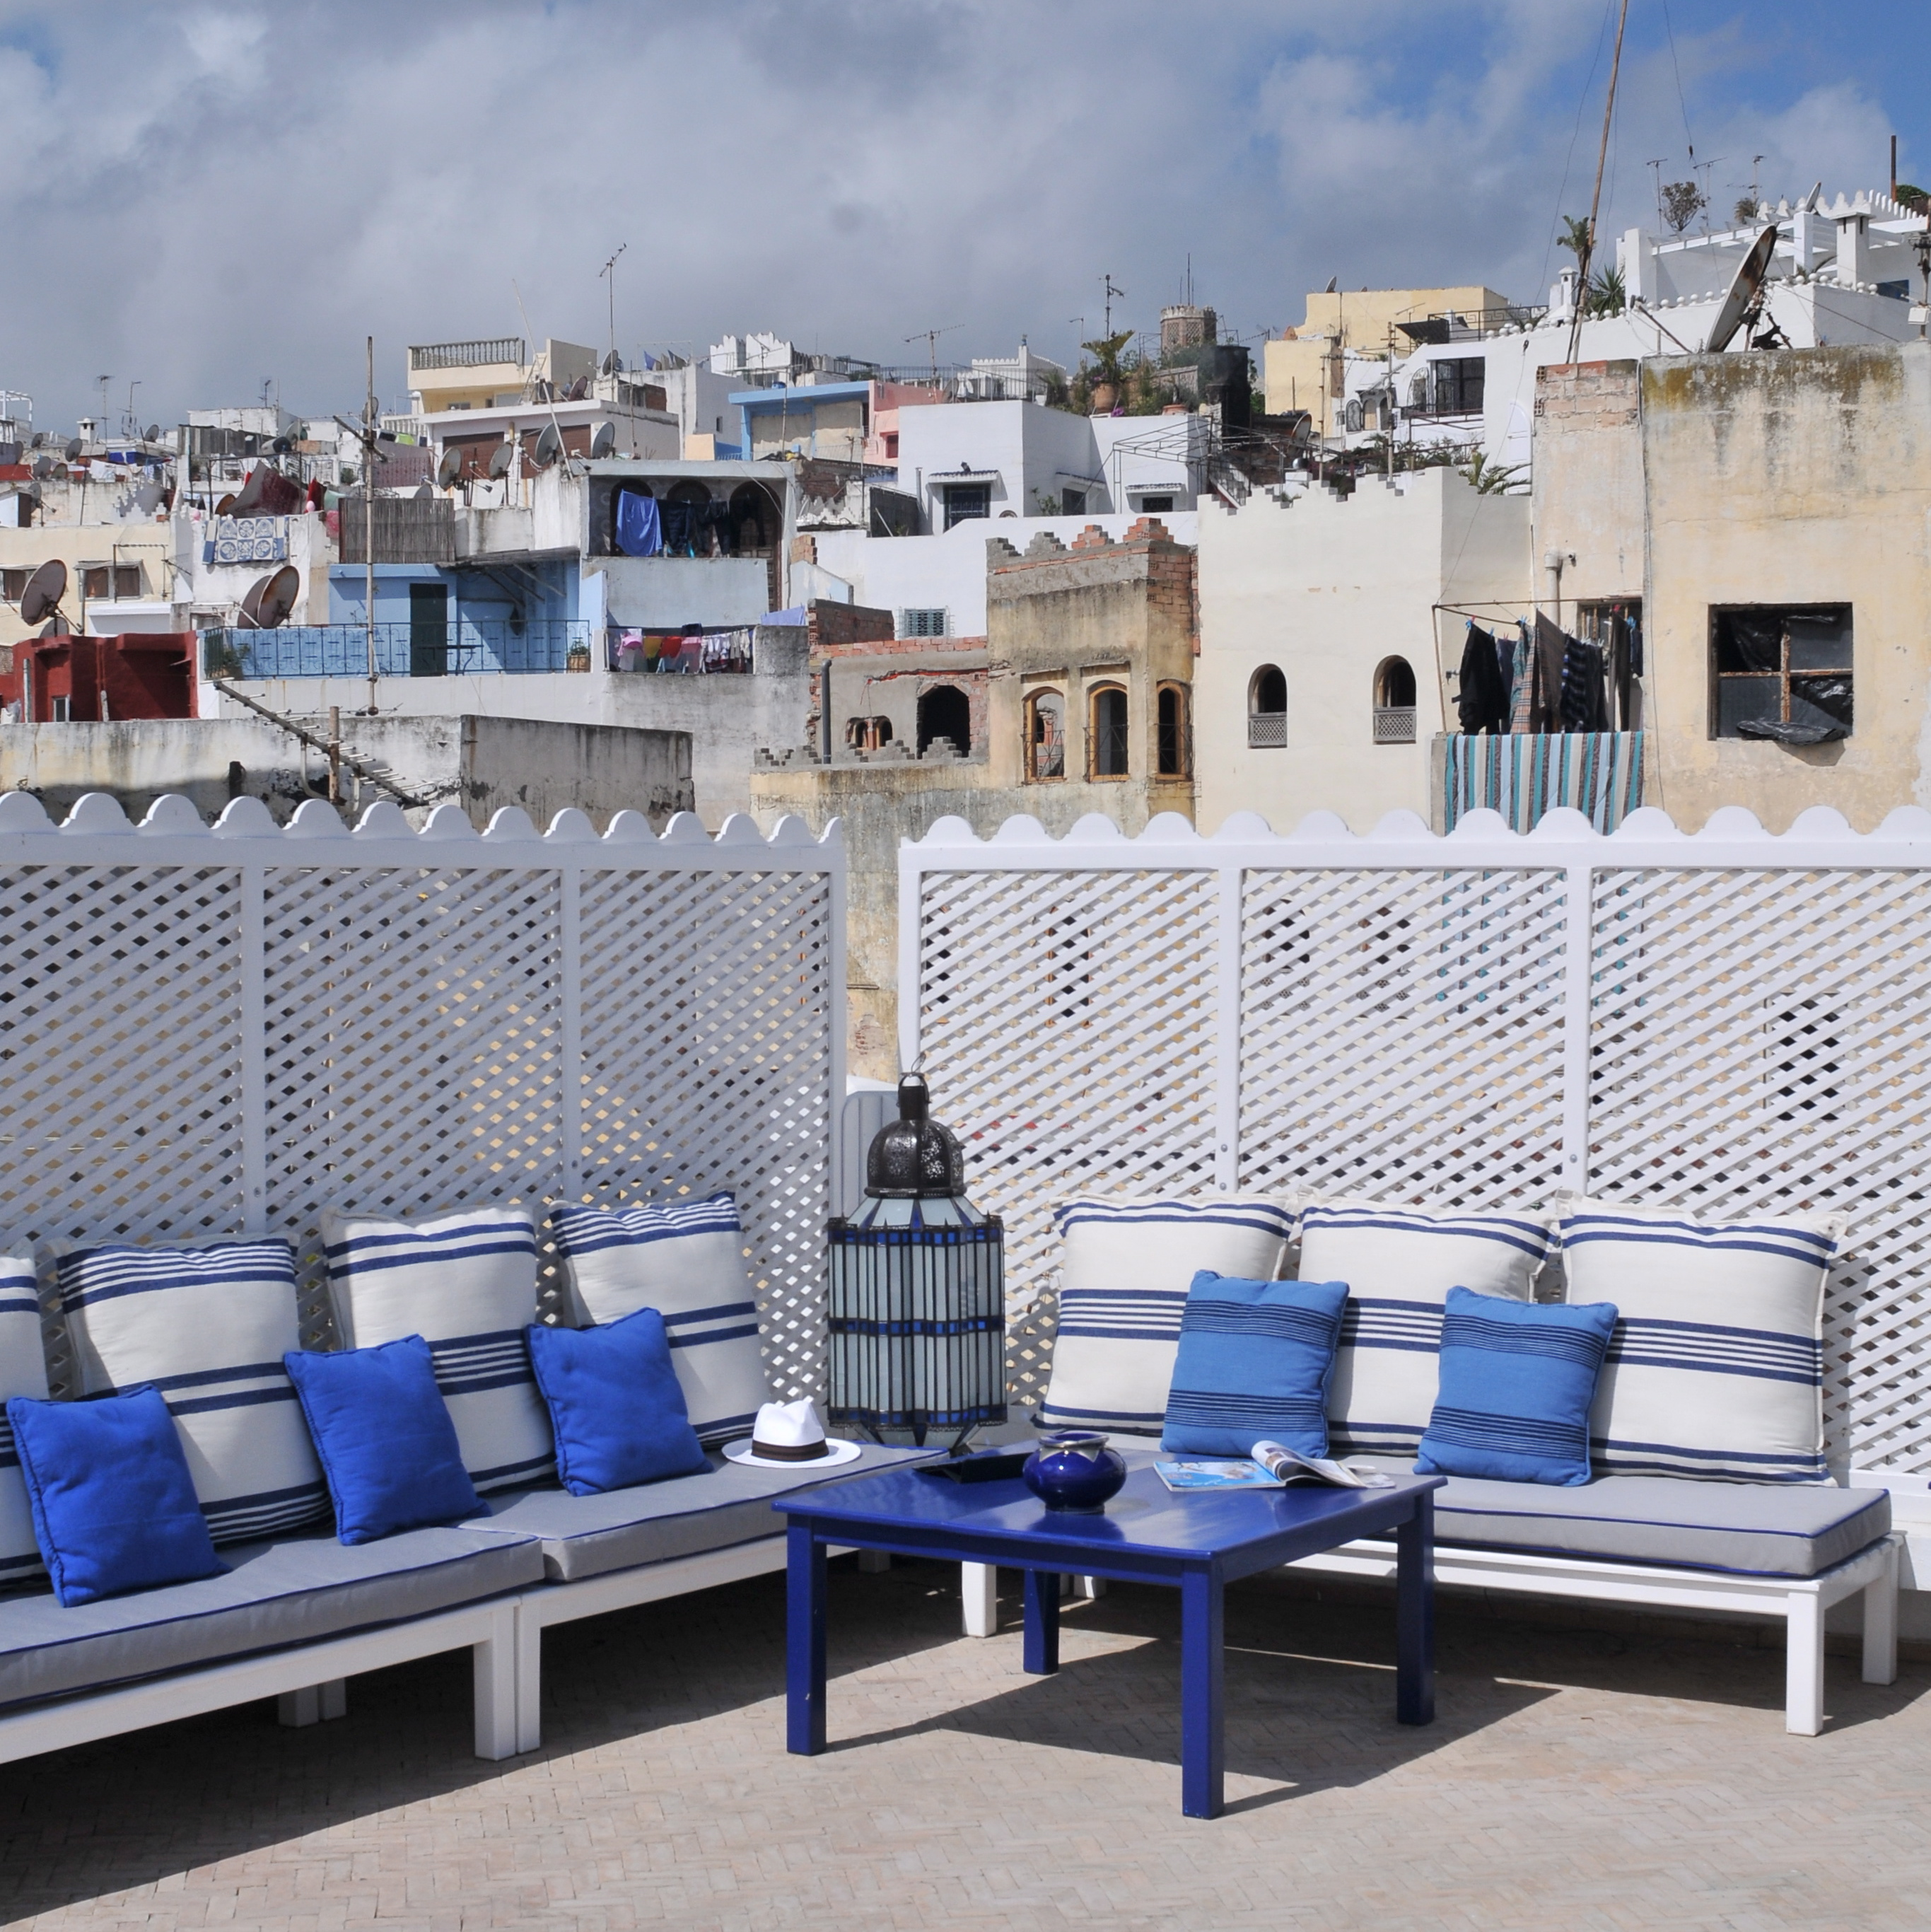 Boutique h tel tanger m dina for Boutique hotel tanger